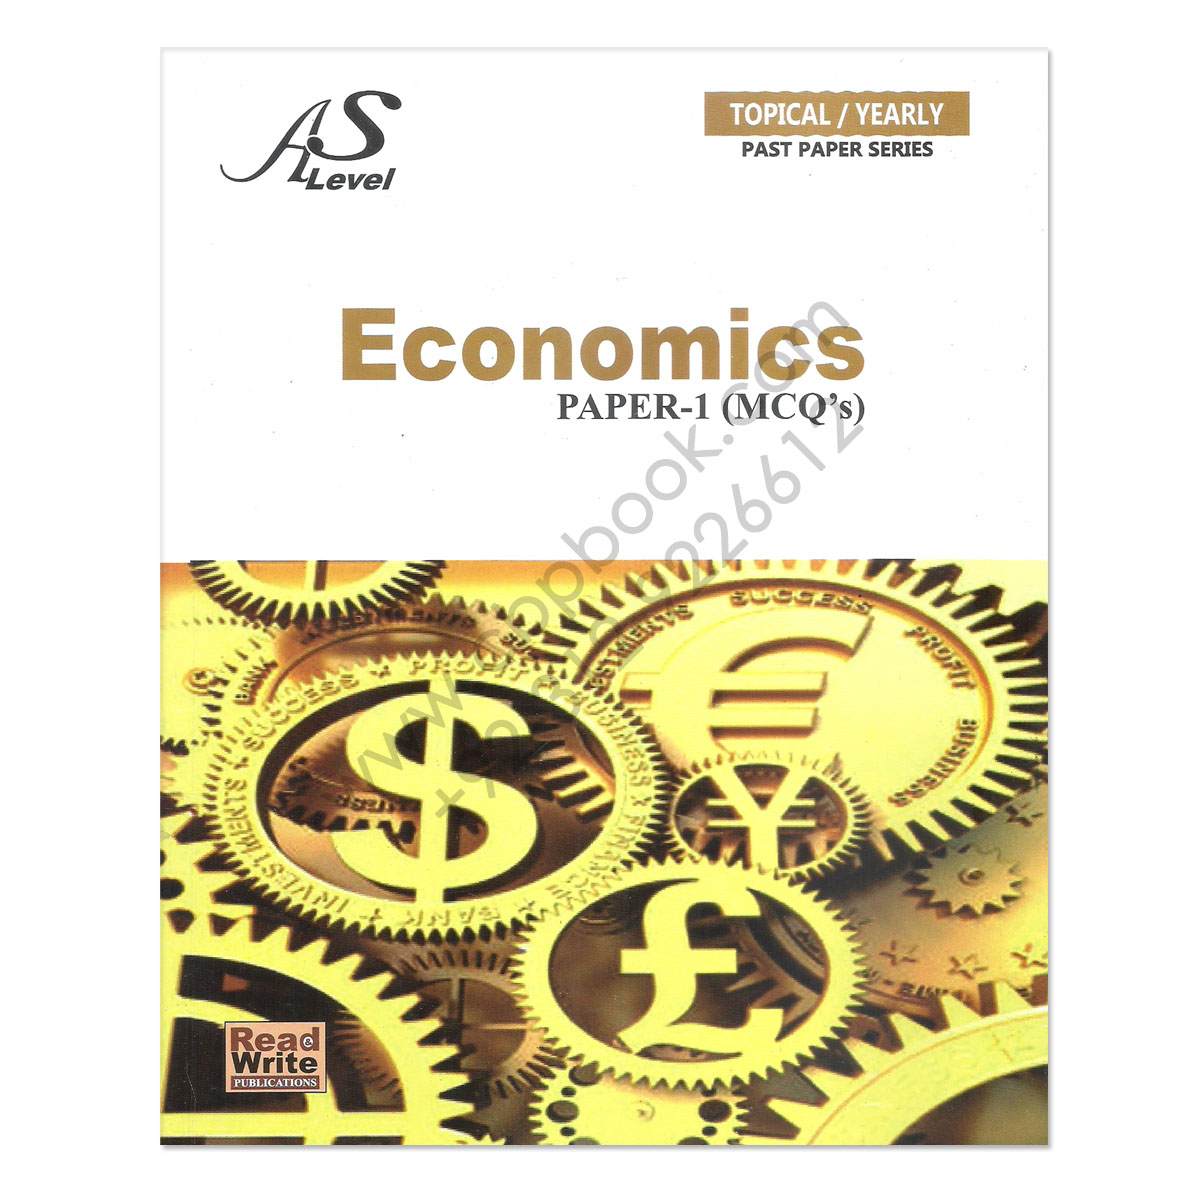 research paper economics To lead to a research paper), however modest working on a project in a clearly defined research area is typically the best way to see new questions, avenues, etc just going to the  microsoft word - how to get started on research in economicsdoc author: pischke.